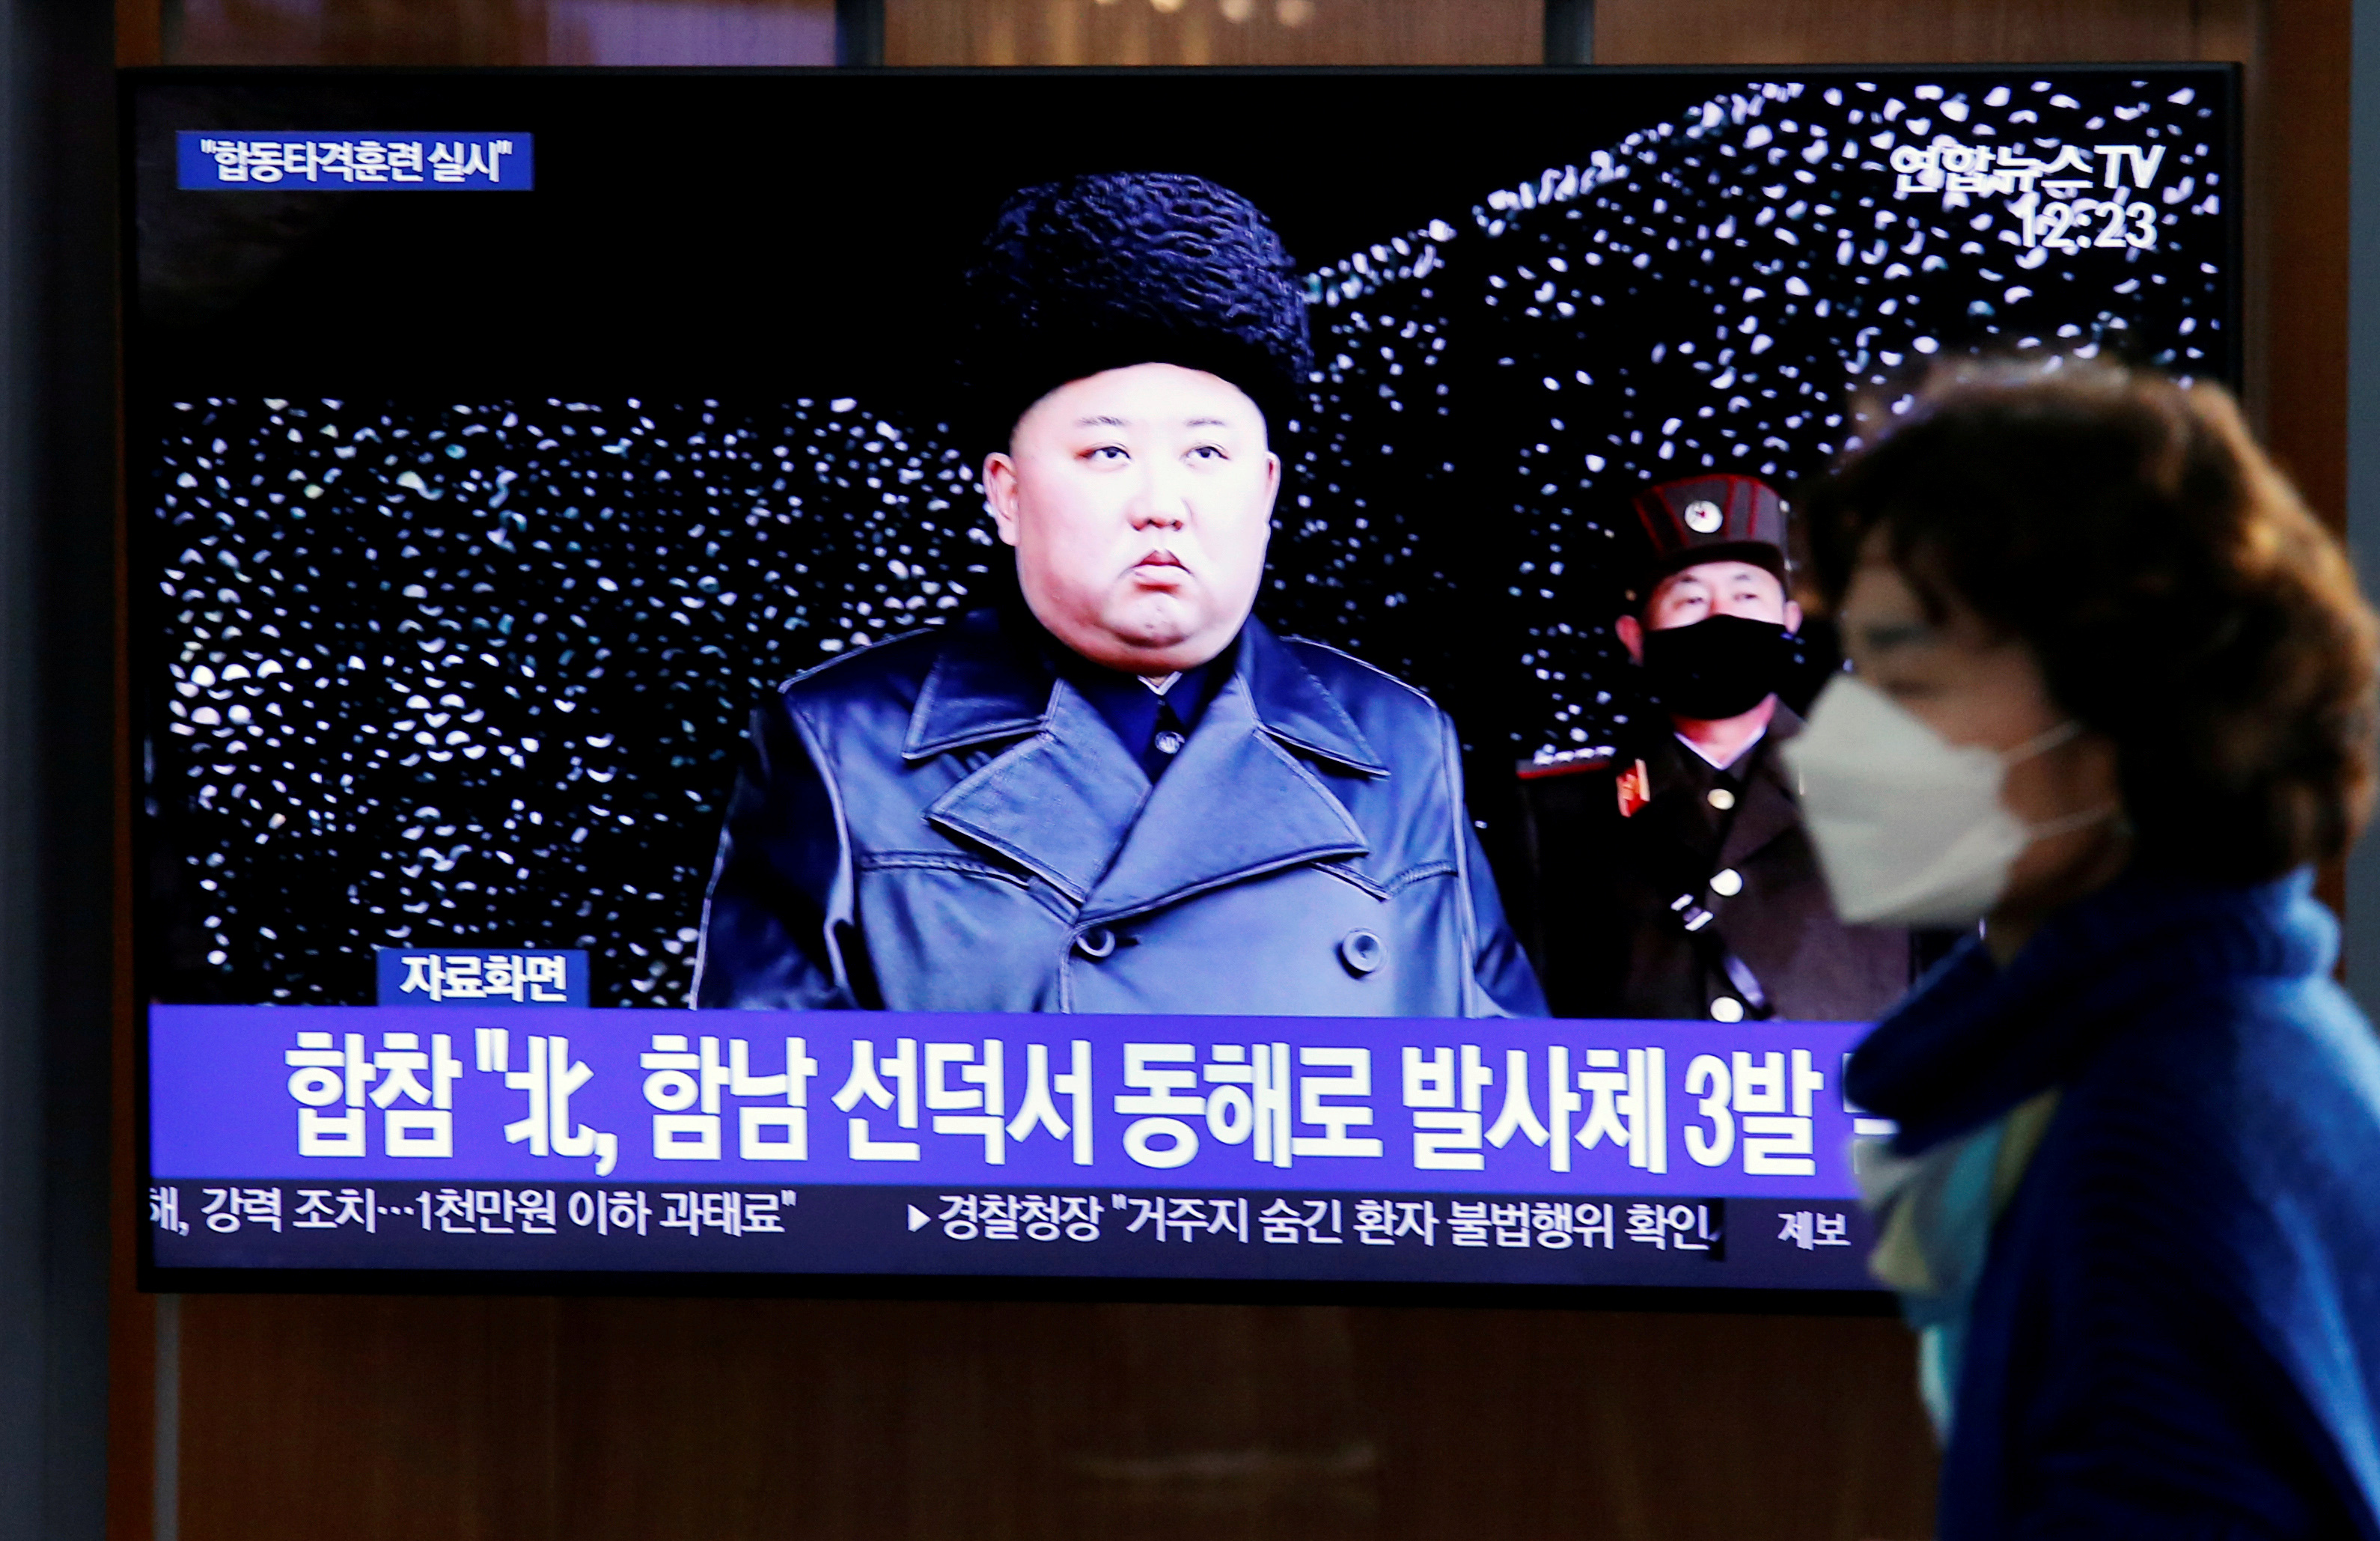 North Korea warns of tensions during search of slain South Korean